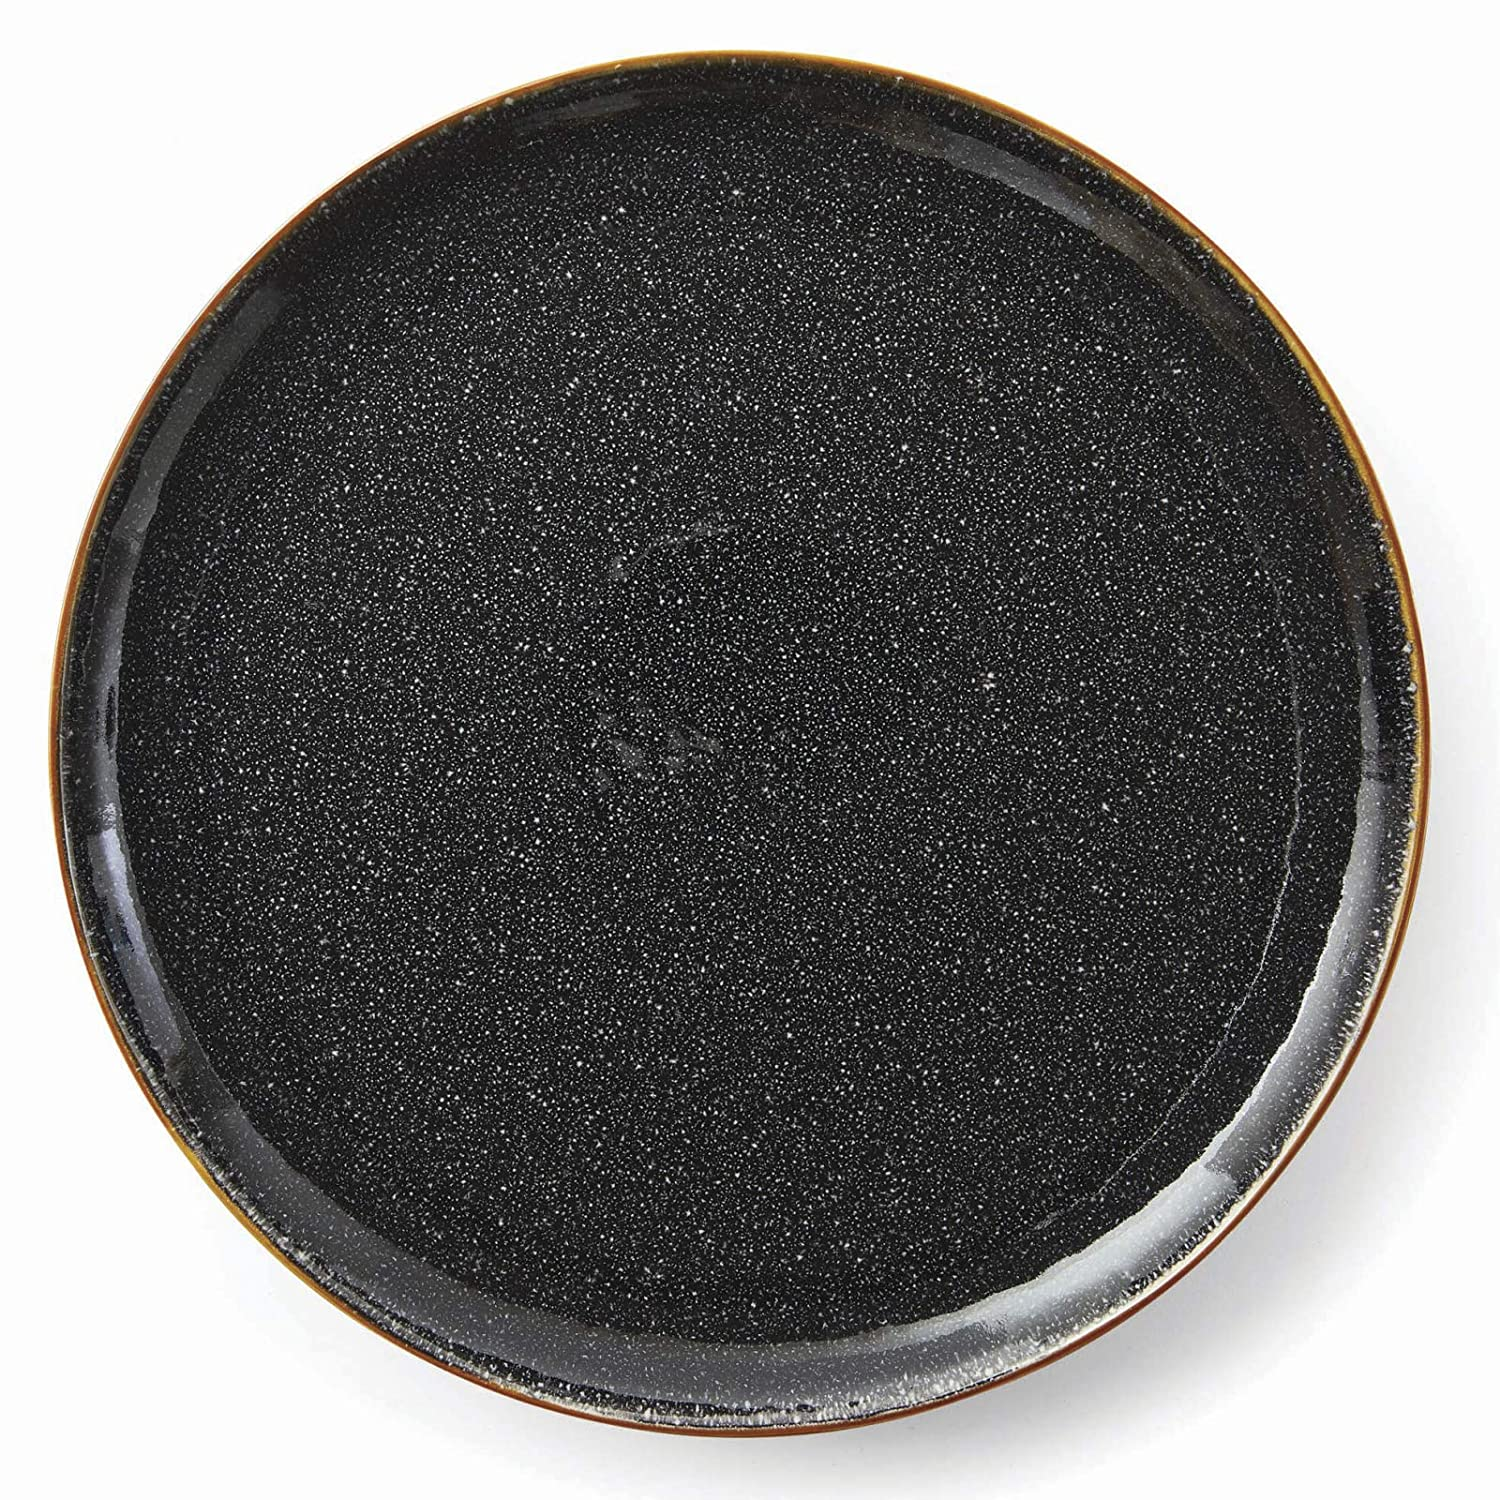 Better Homes and Gardens Burns Dinner Plates, set of 4, Black